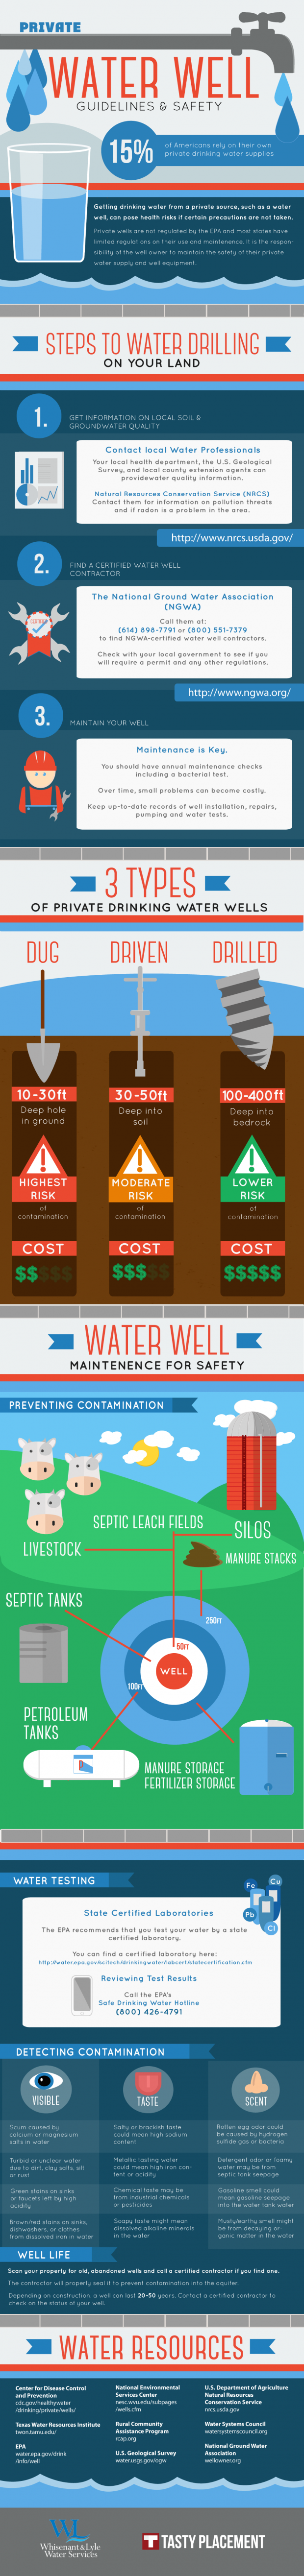 Private Water Well Guidelines & Safety